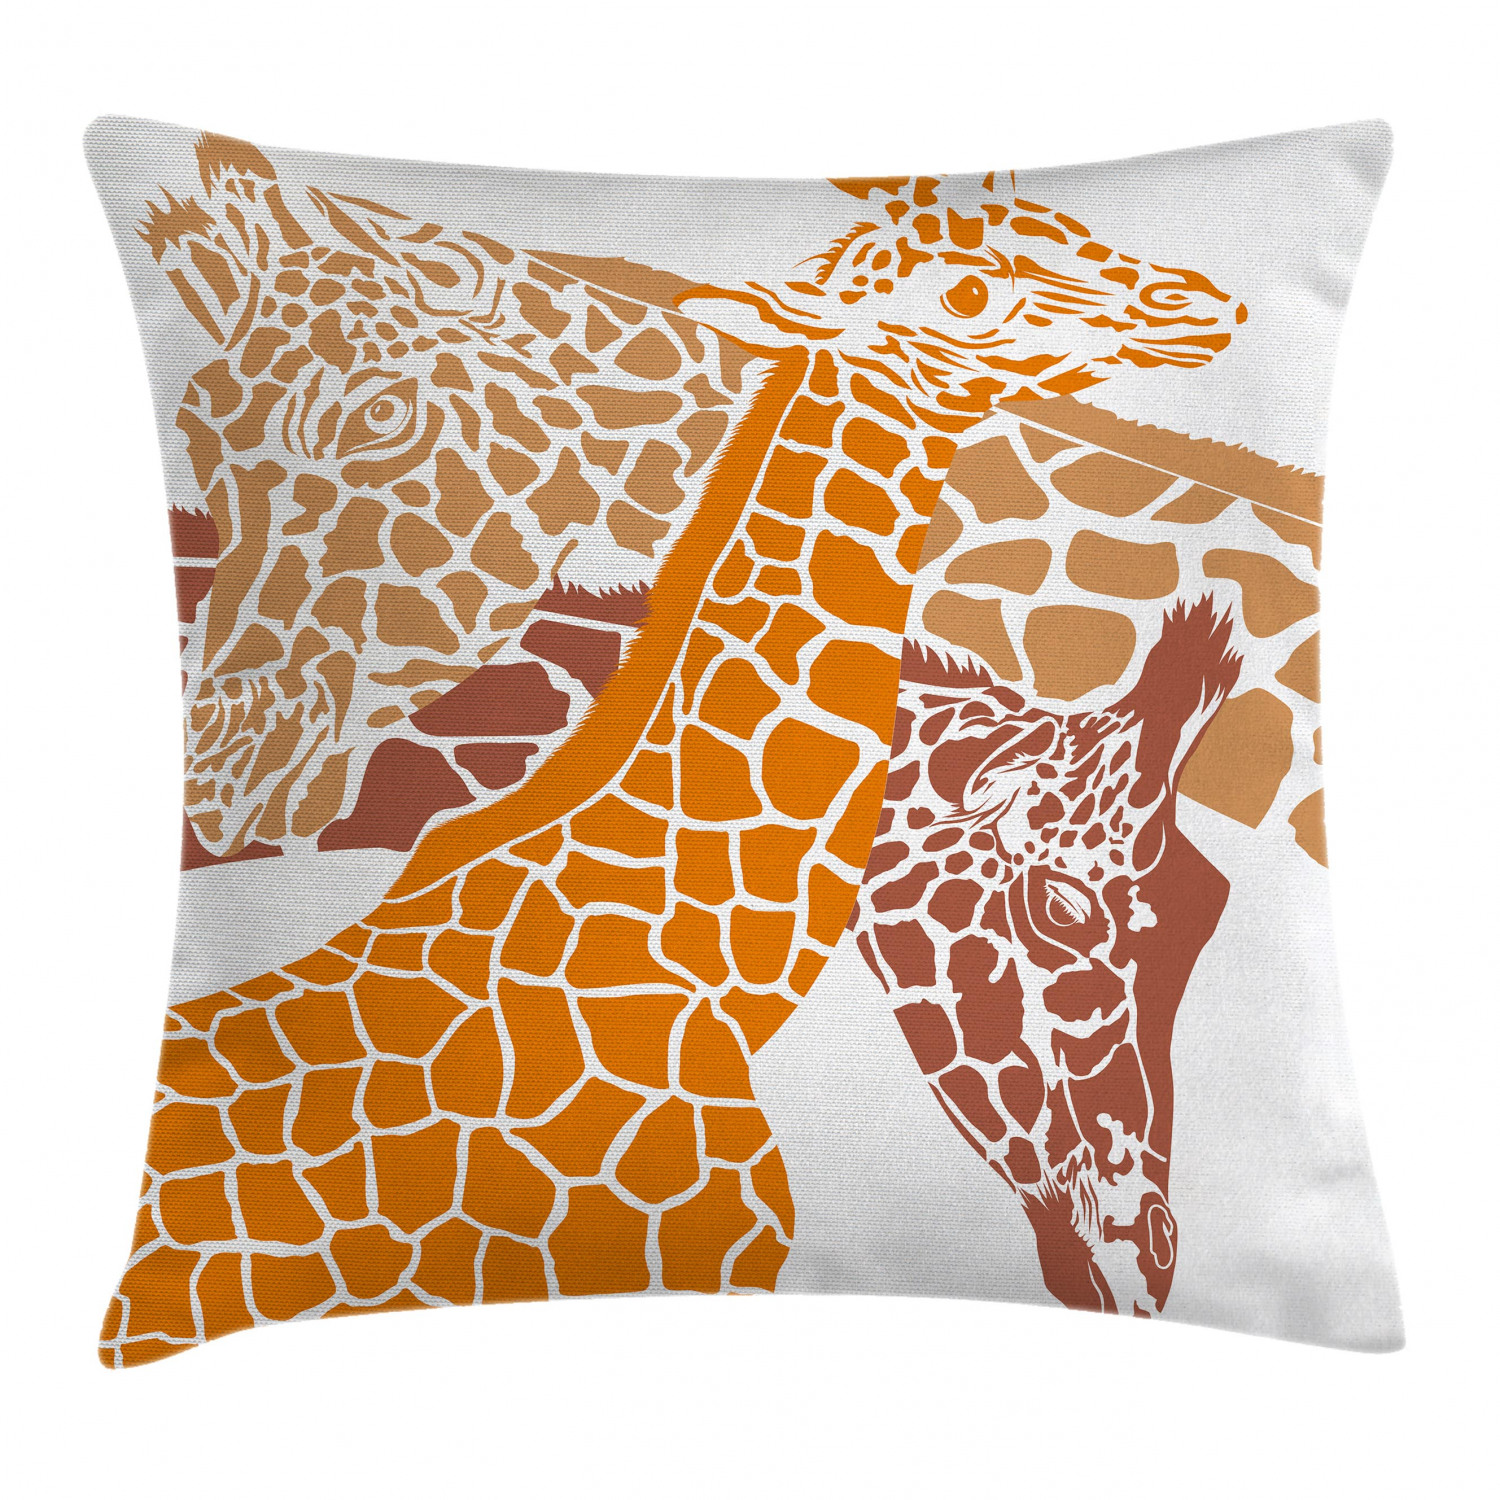 Giraffe Throw Pillow Cushion Cover Sketch Of A Family Safari Wildlife In African Tall Animal Zoo Camouflage Decorative Square Accent Pillow Case 16 X 16 Inches Orange White Brown By Ambesonne